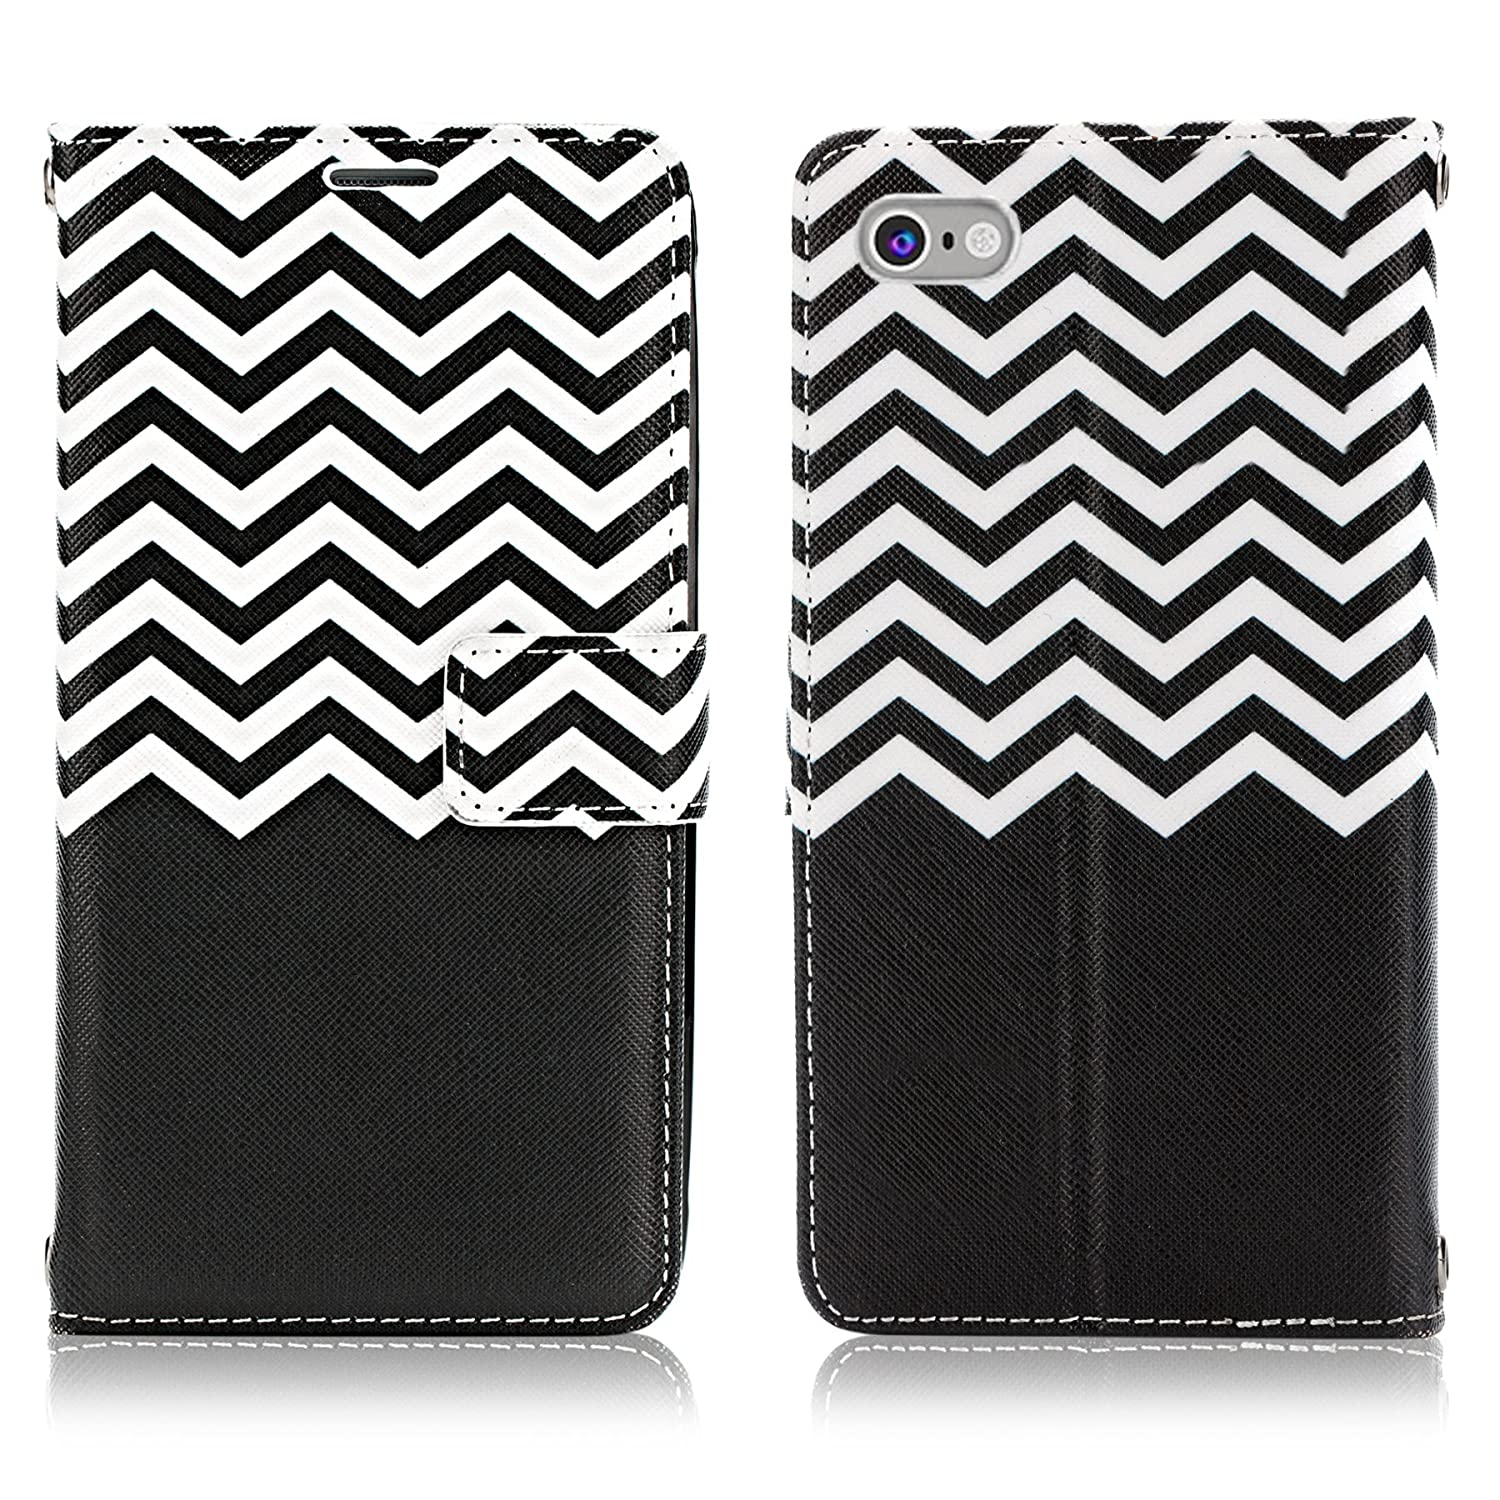 Cellularvilla Feature Premium Protective Leather Image 2